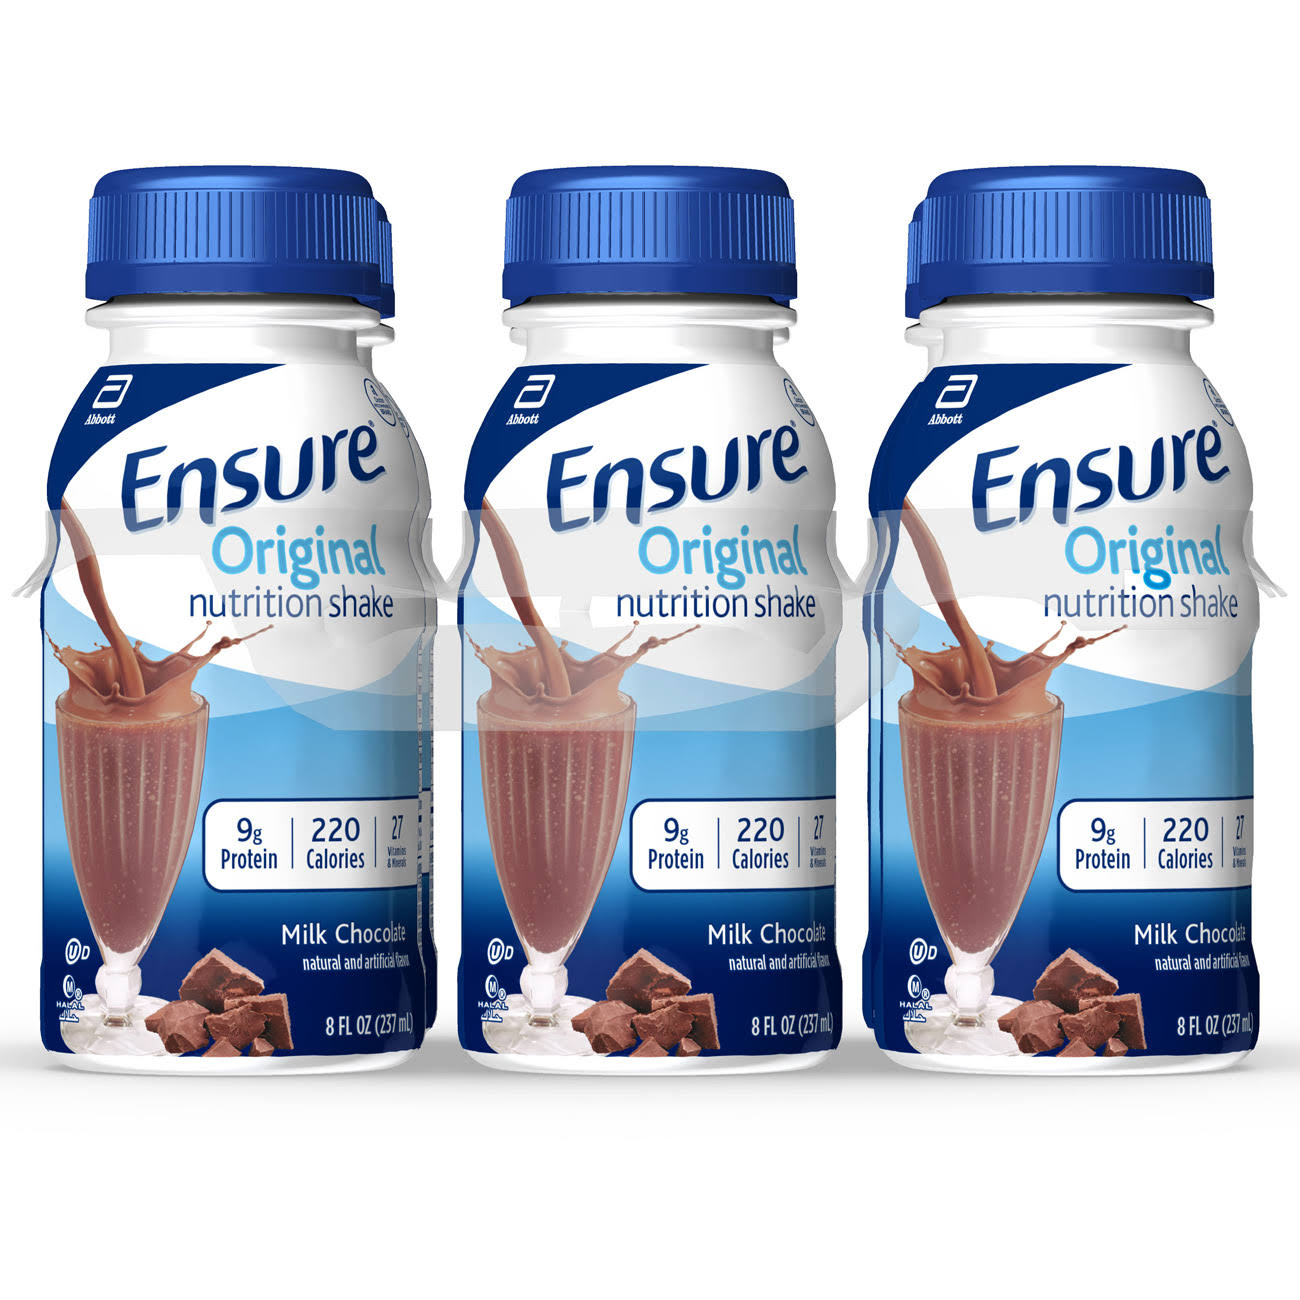 Ensure Nutrition Shake - Creamy Milk Chocolate Shake, 6ct